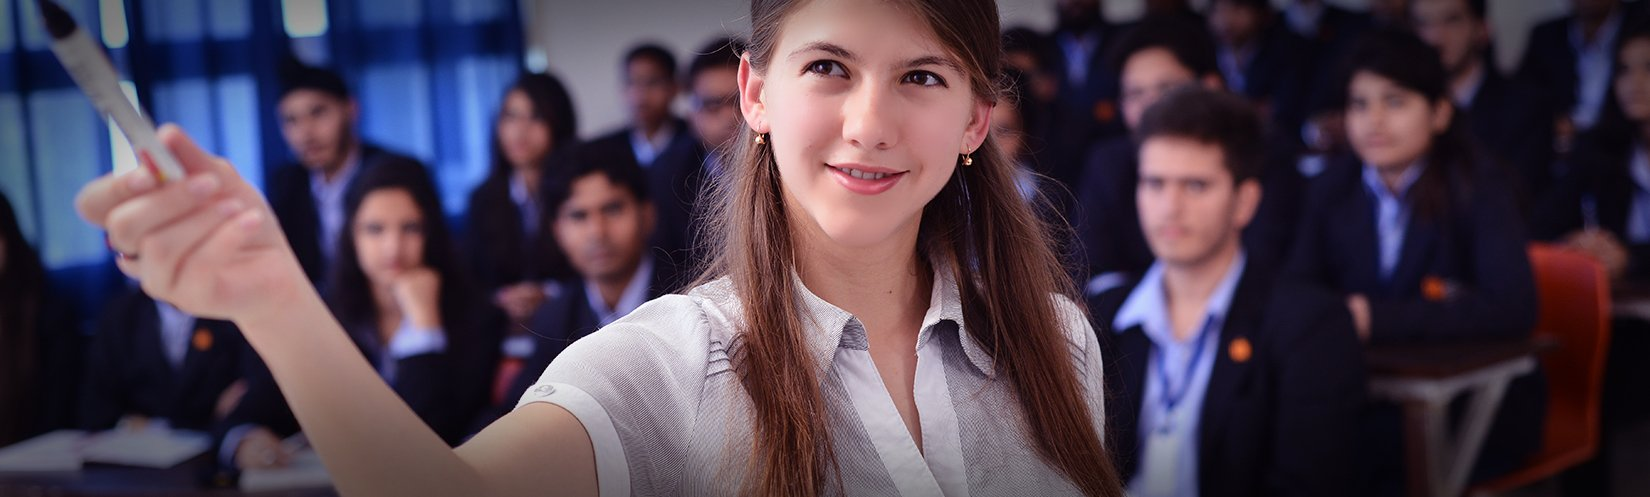 Top Engineering College in Delhi NCR